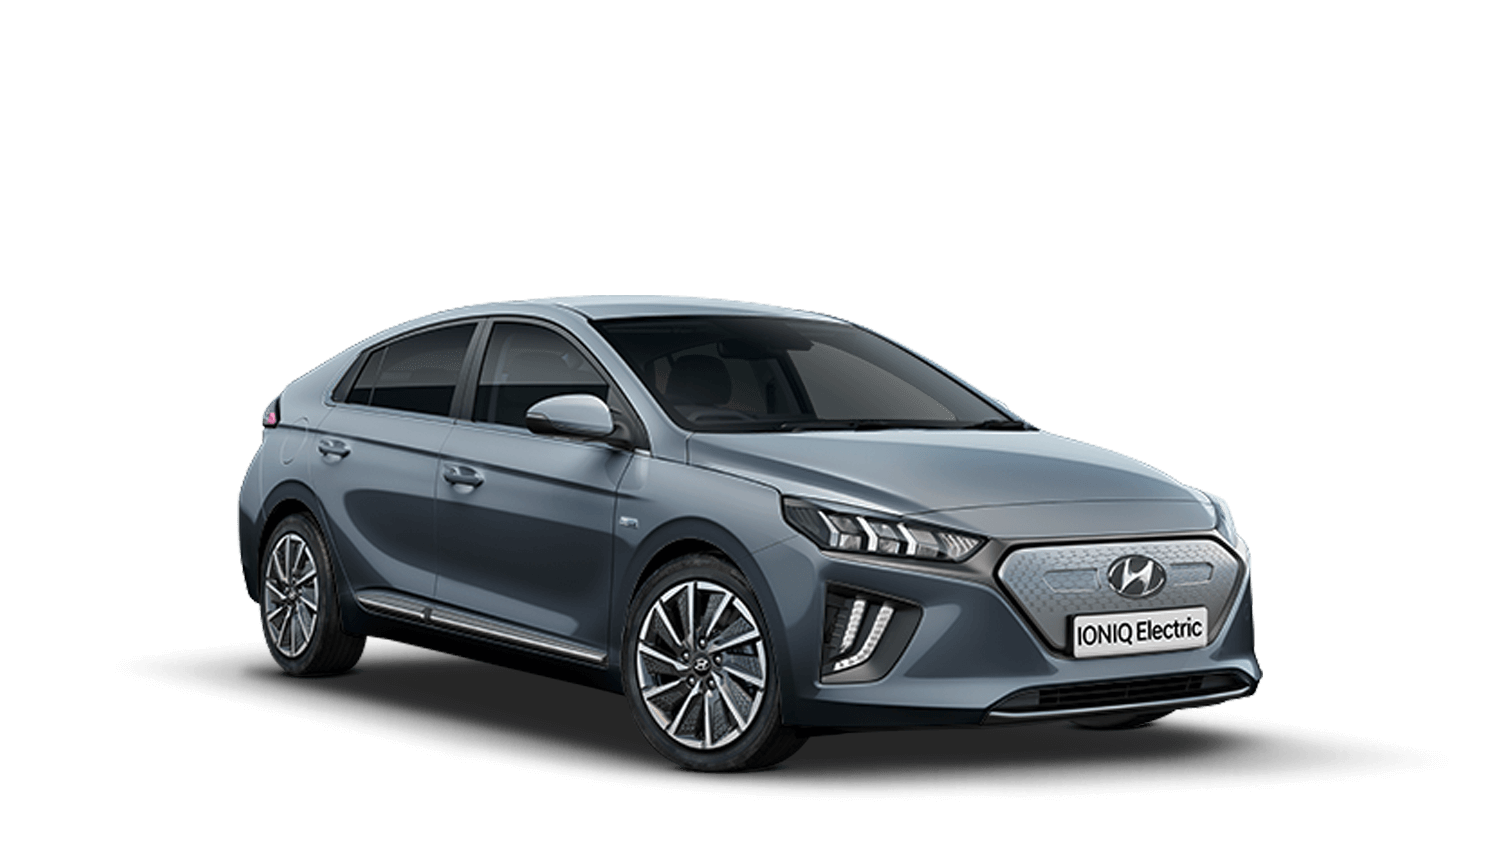 Electric Shadow Hyundai IONIQ Electric